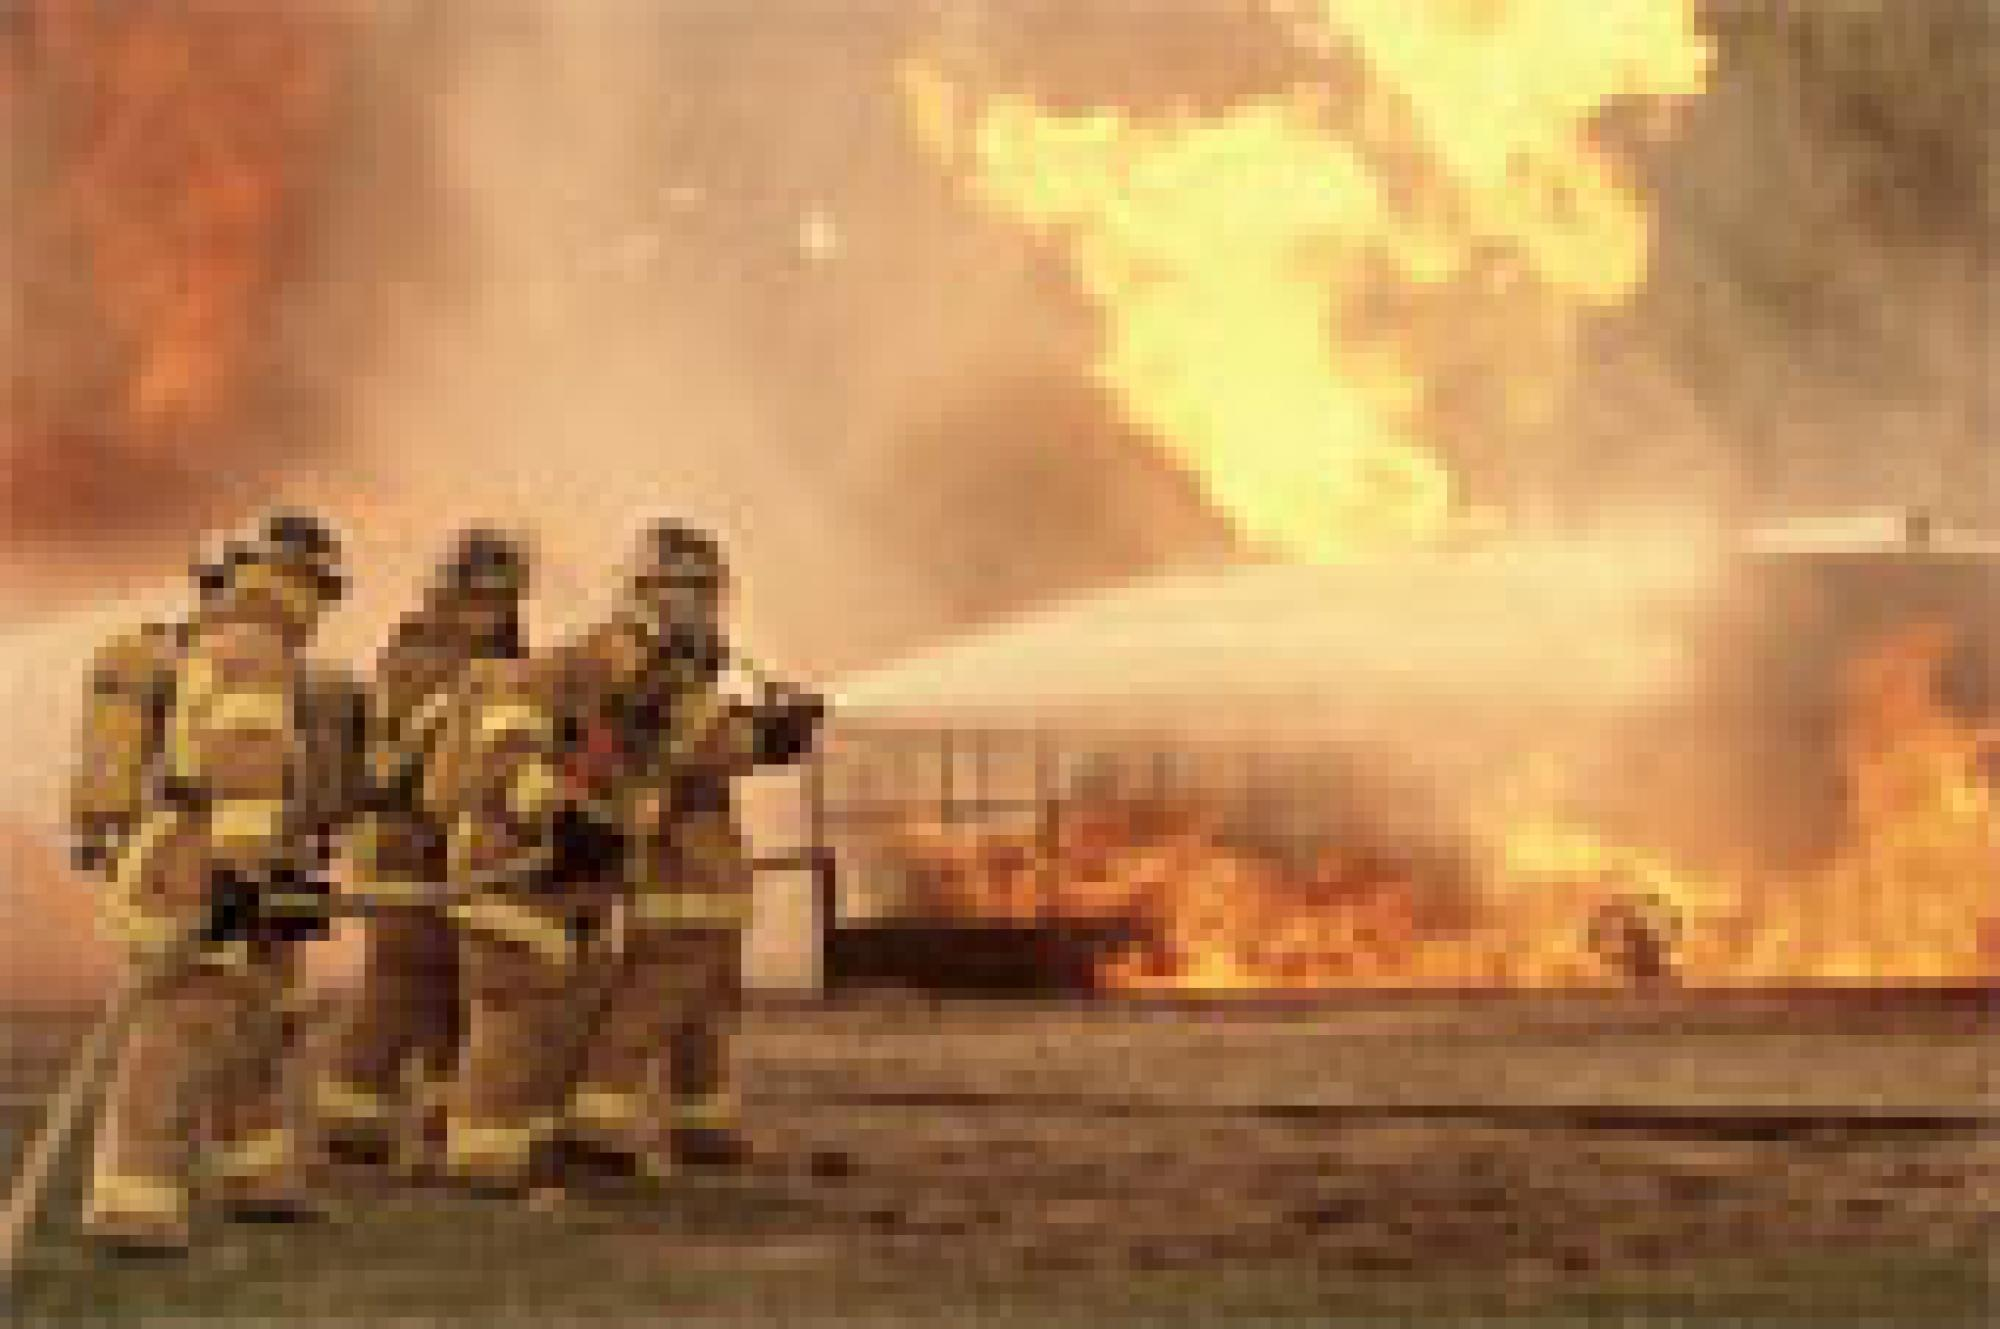 Most firefighters who die of heart attacks have underlying heart disease, but in many cases the disease is not discovered early. Standard medical tests for firefighters do not detect early heart disease.